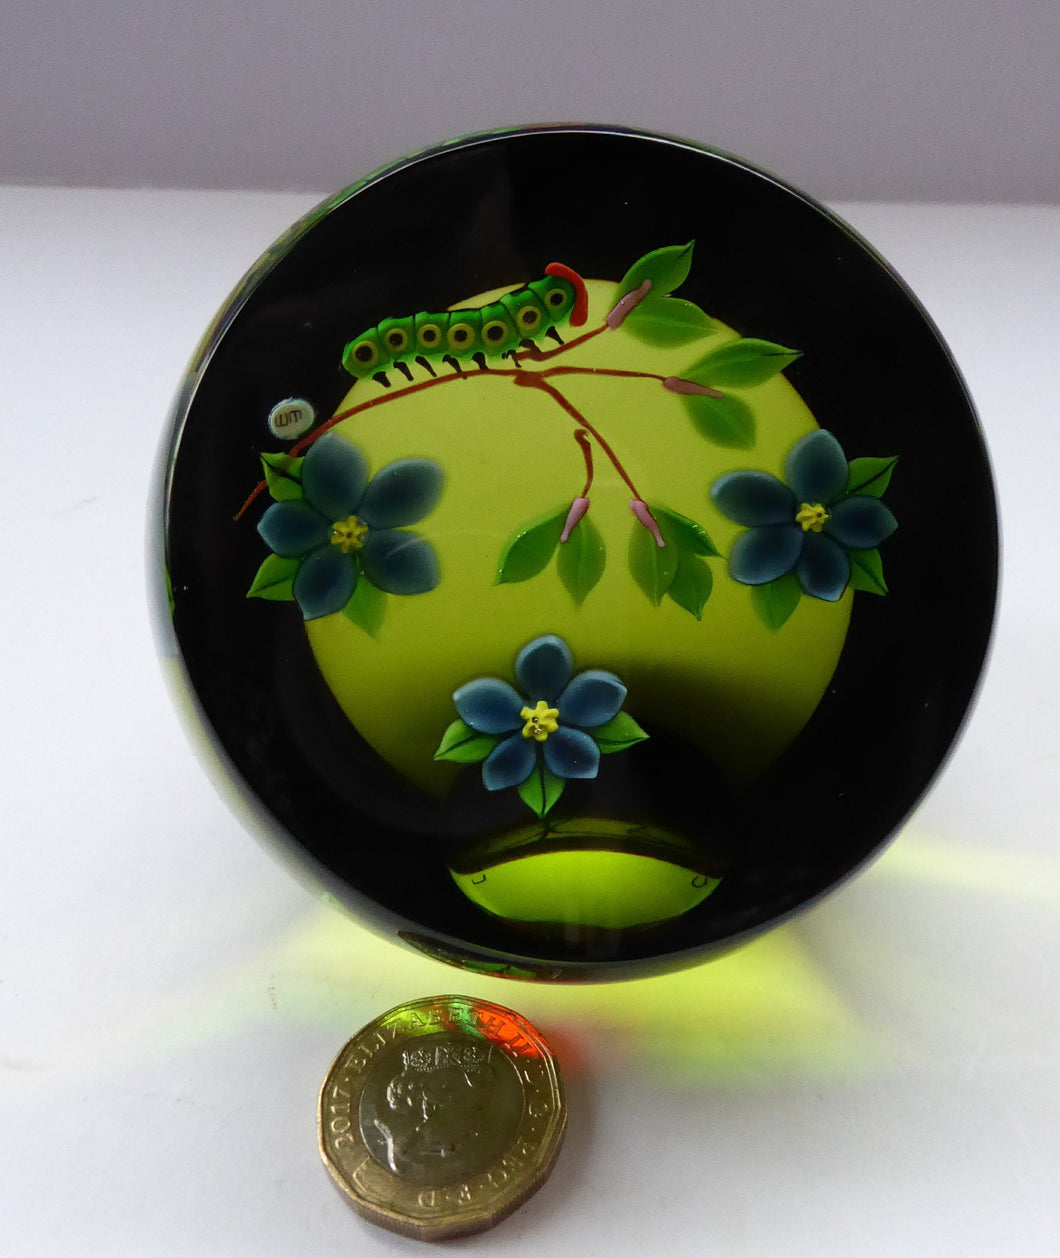 993 Limited Edition Caithness CATERPILLAR Paperweight by William Manson